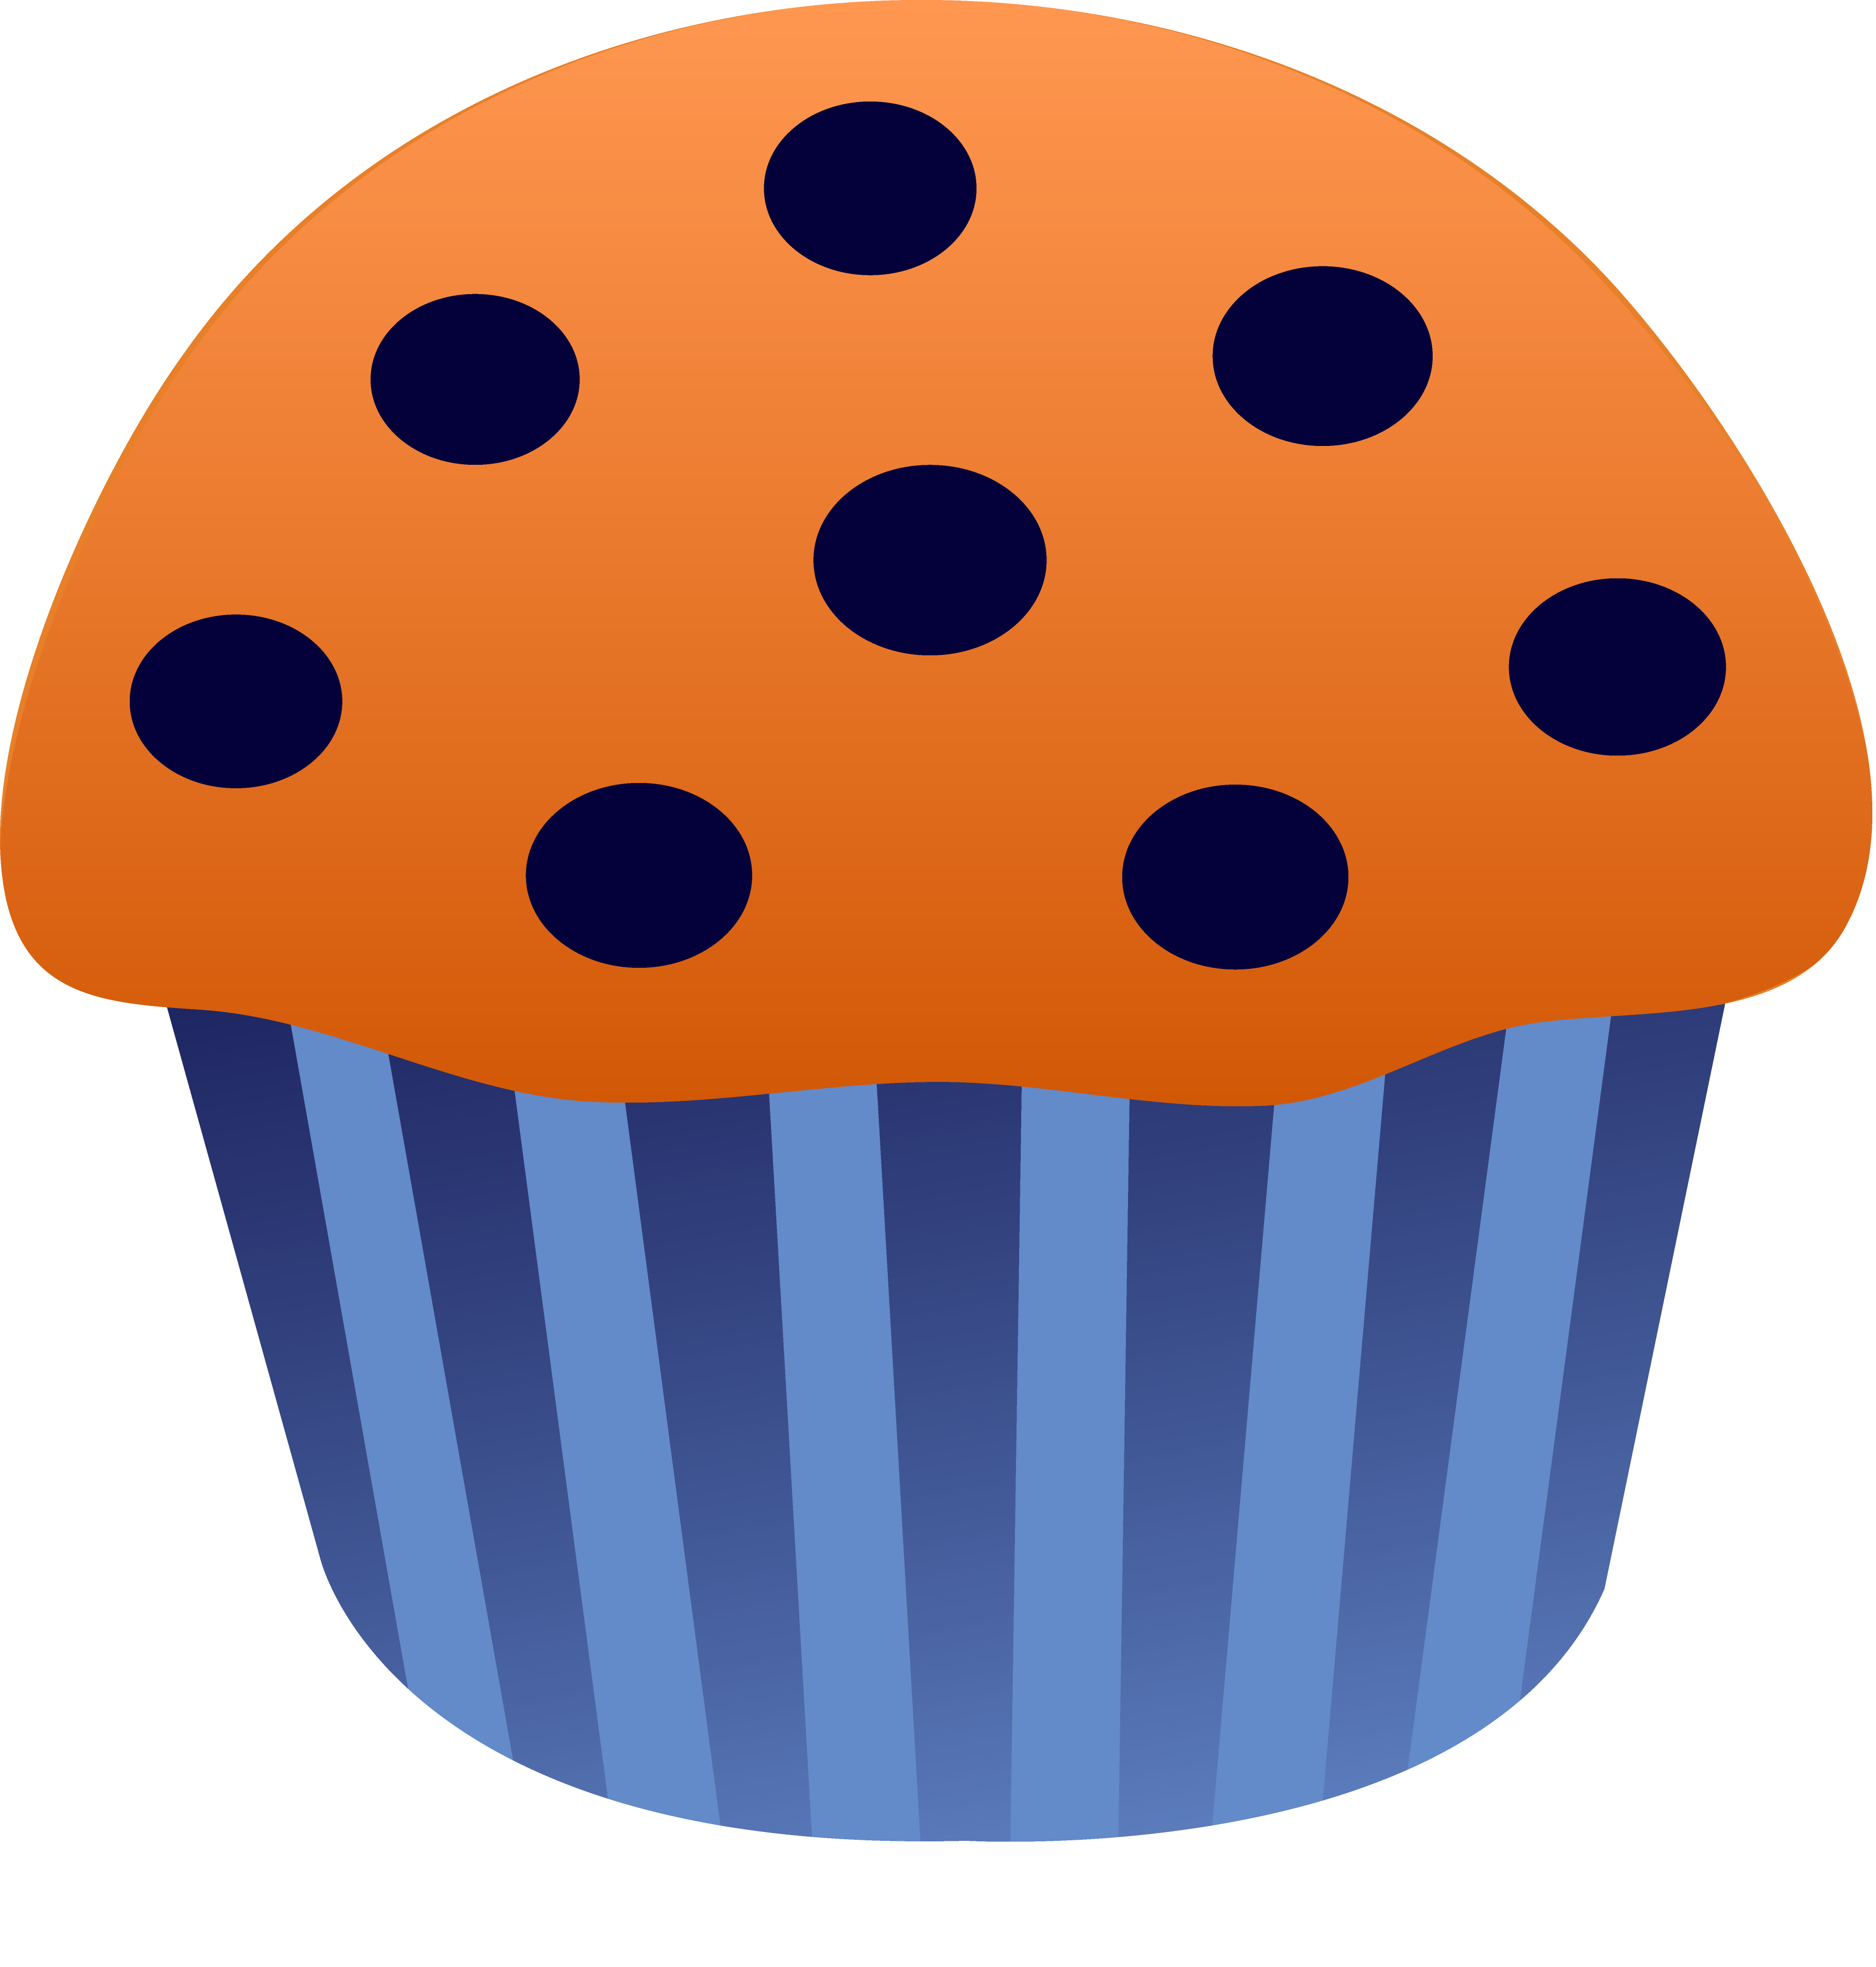 Free muffin clipart images.